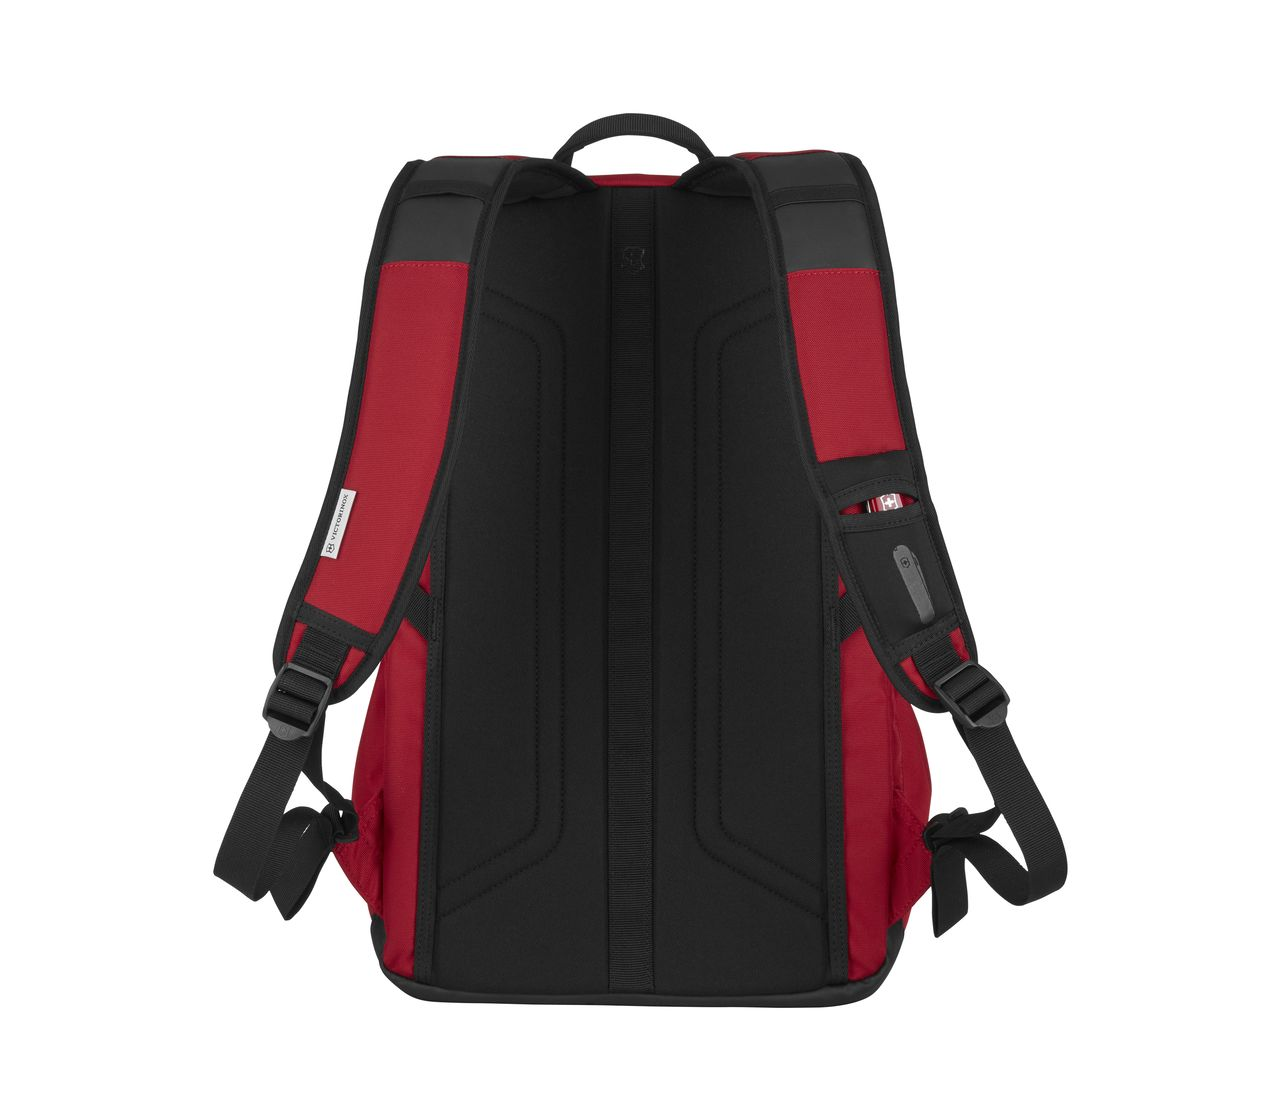 Altmont Original Slimline Laptop Backpack-606741